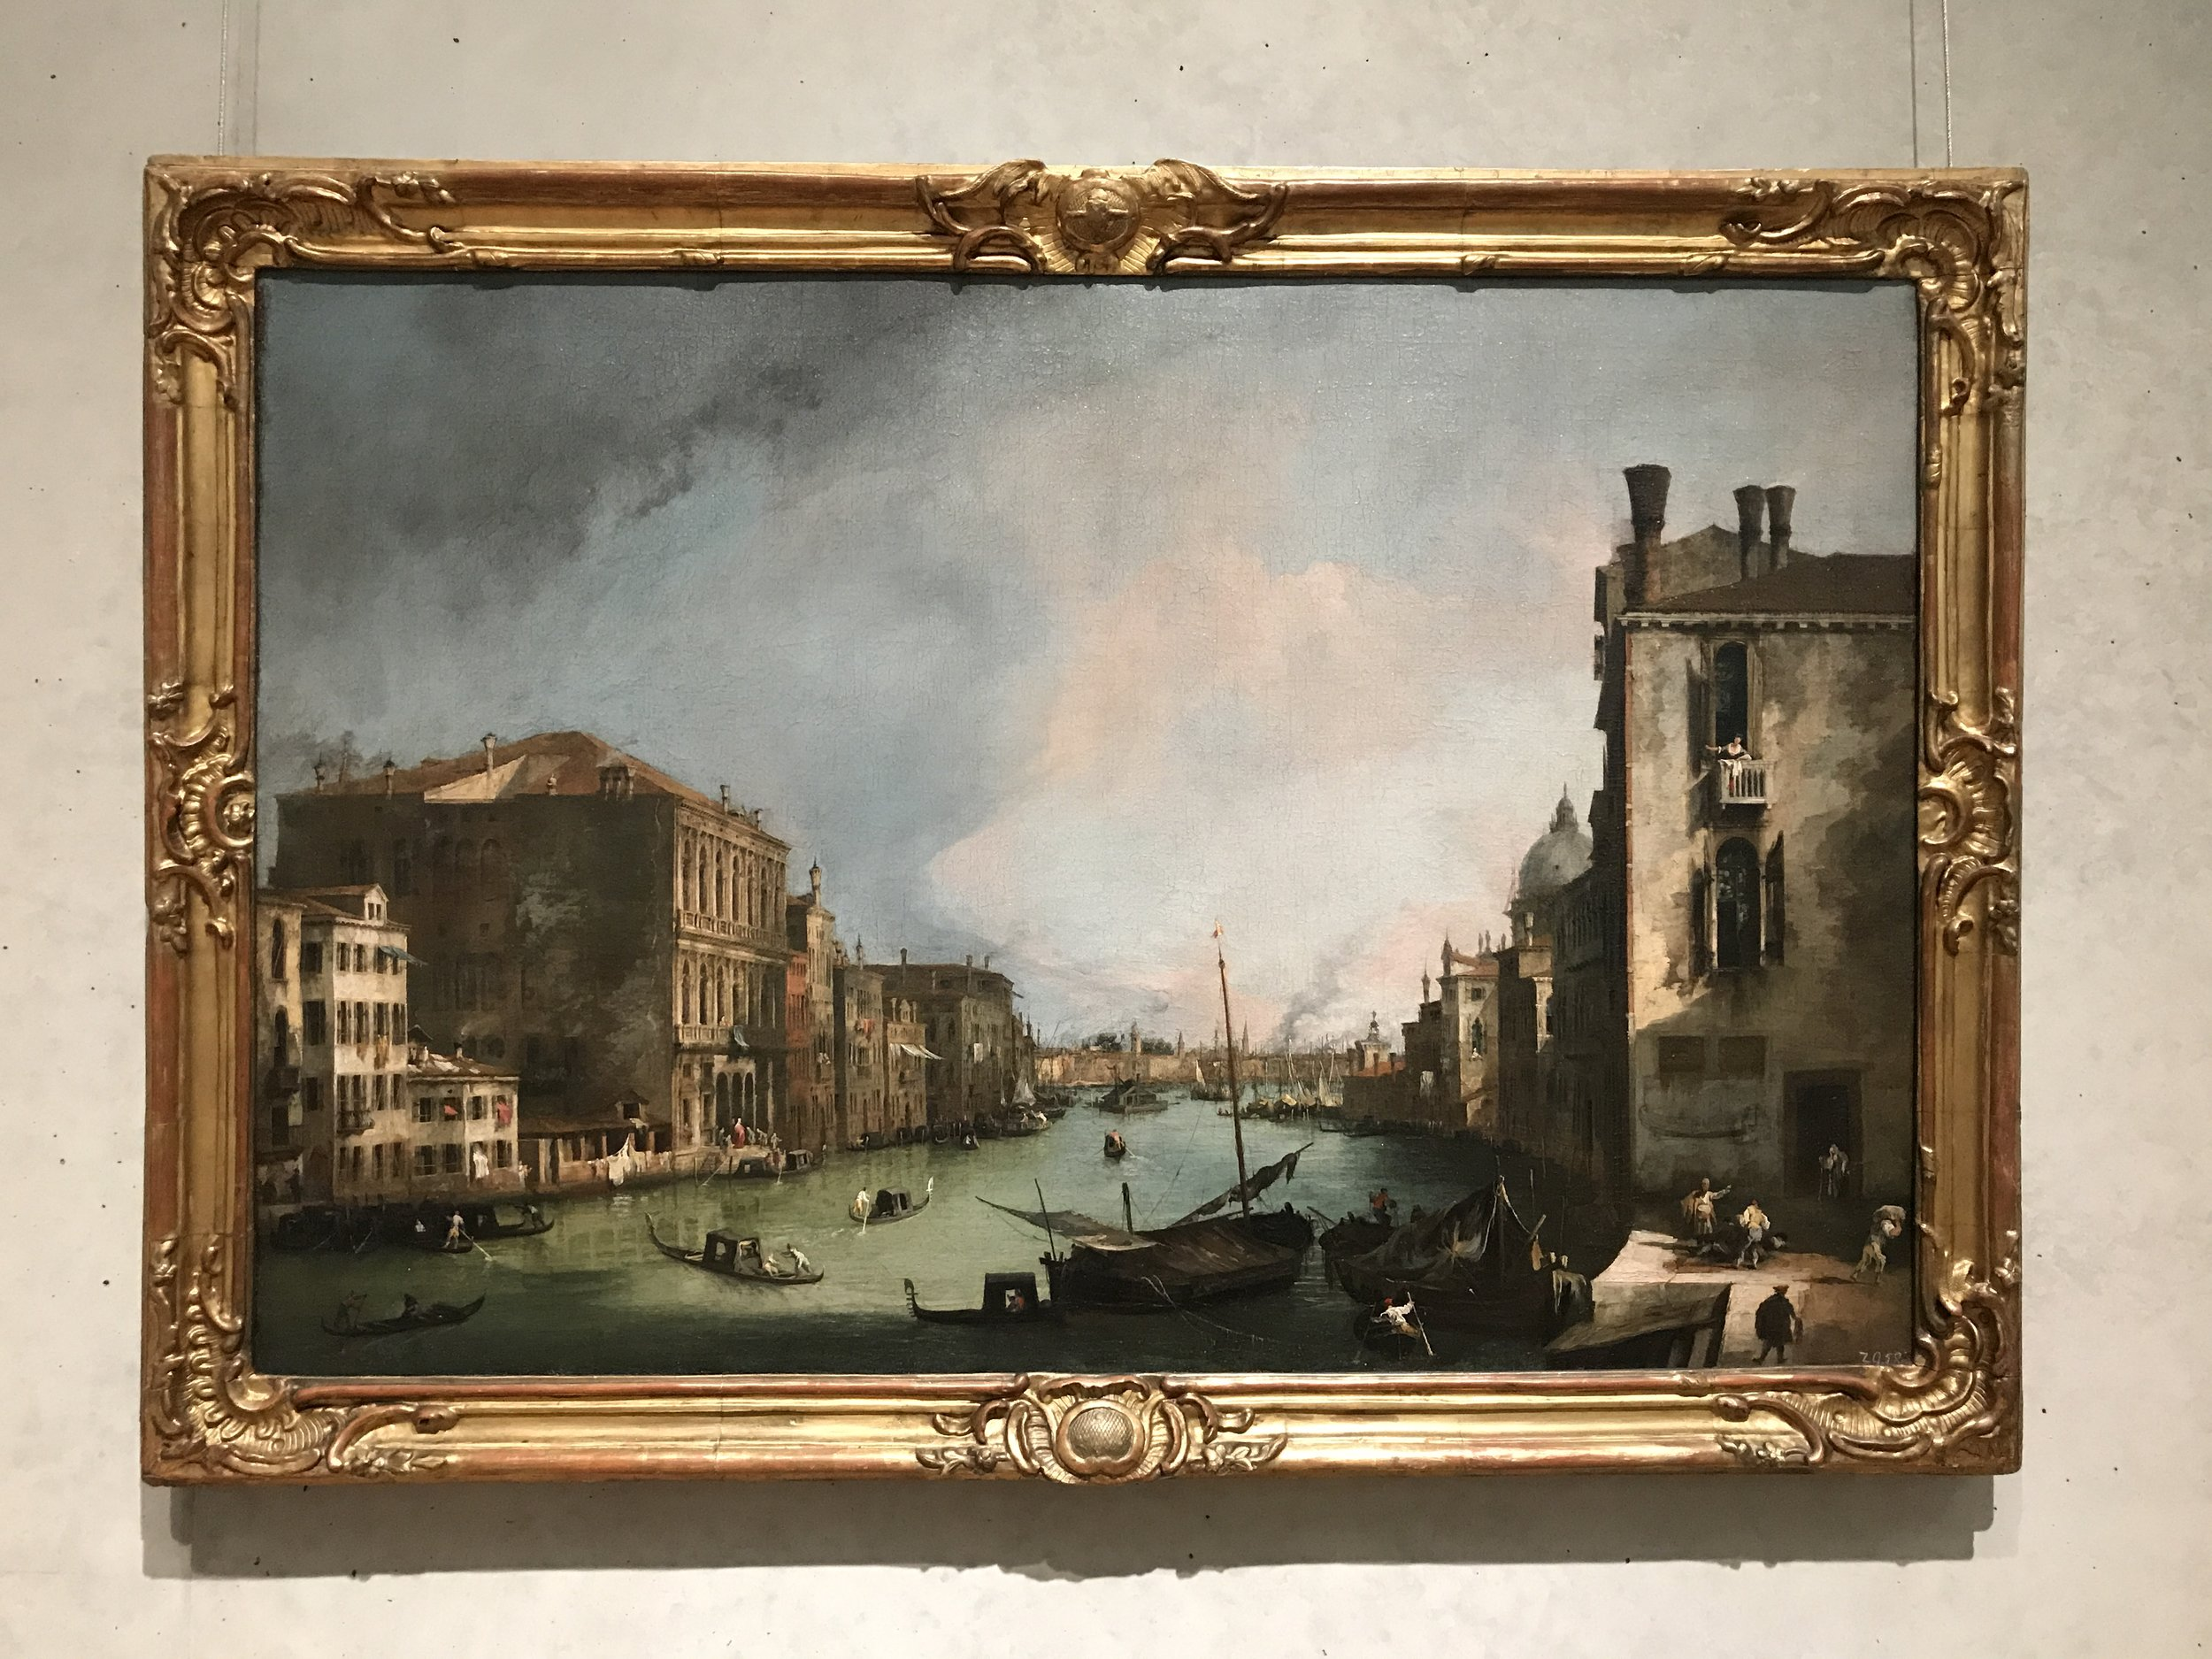 The Canal Grande in Venice - Canaletto